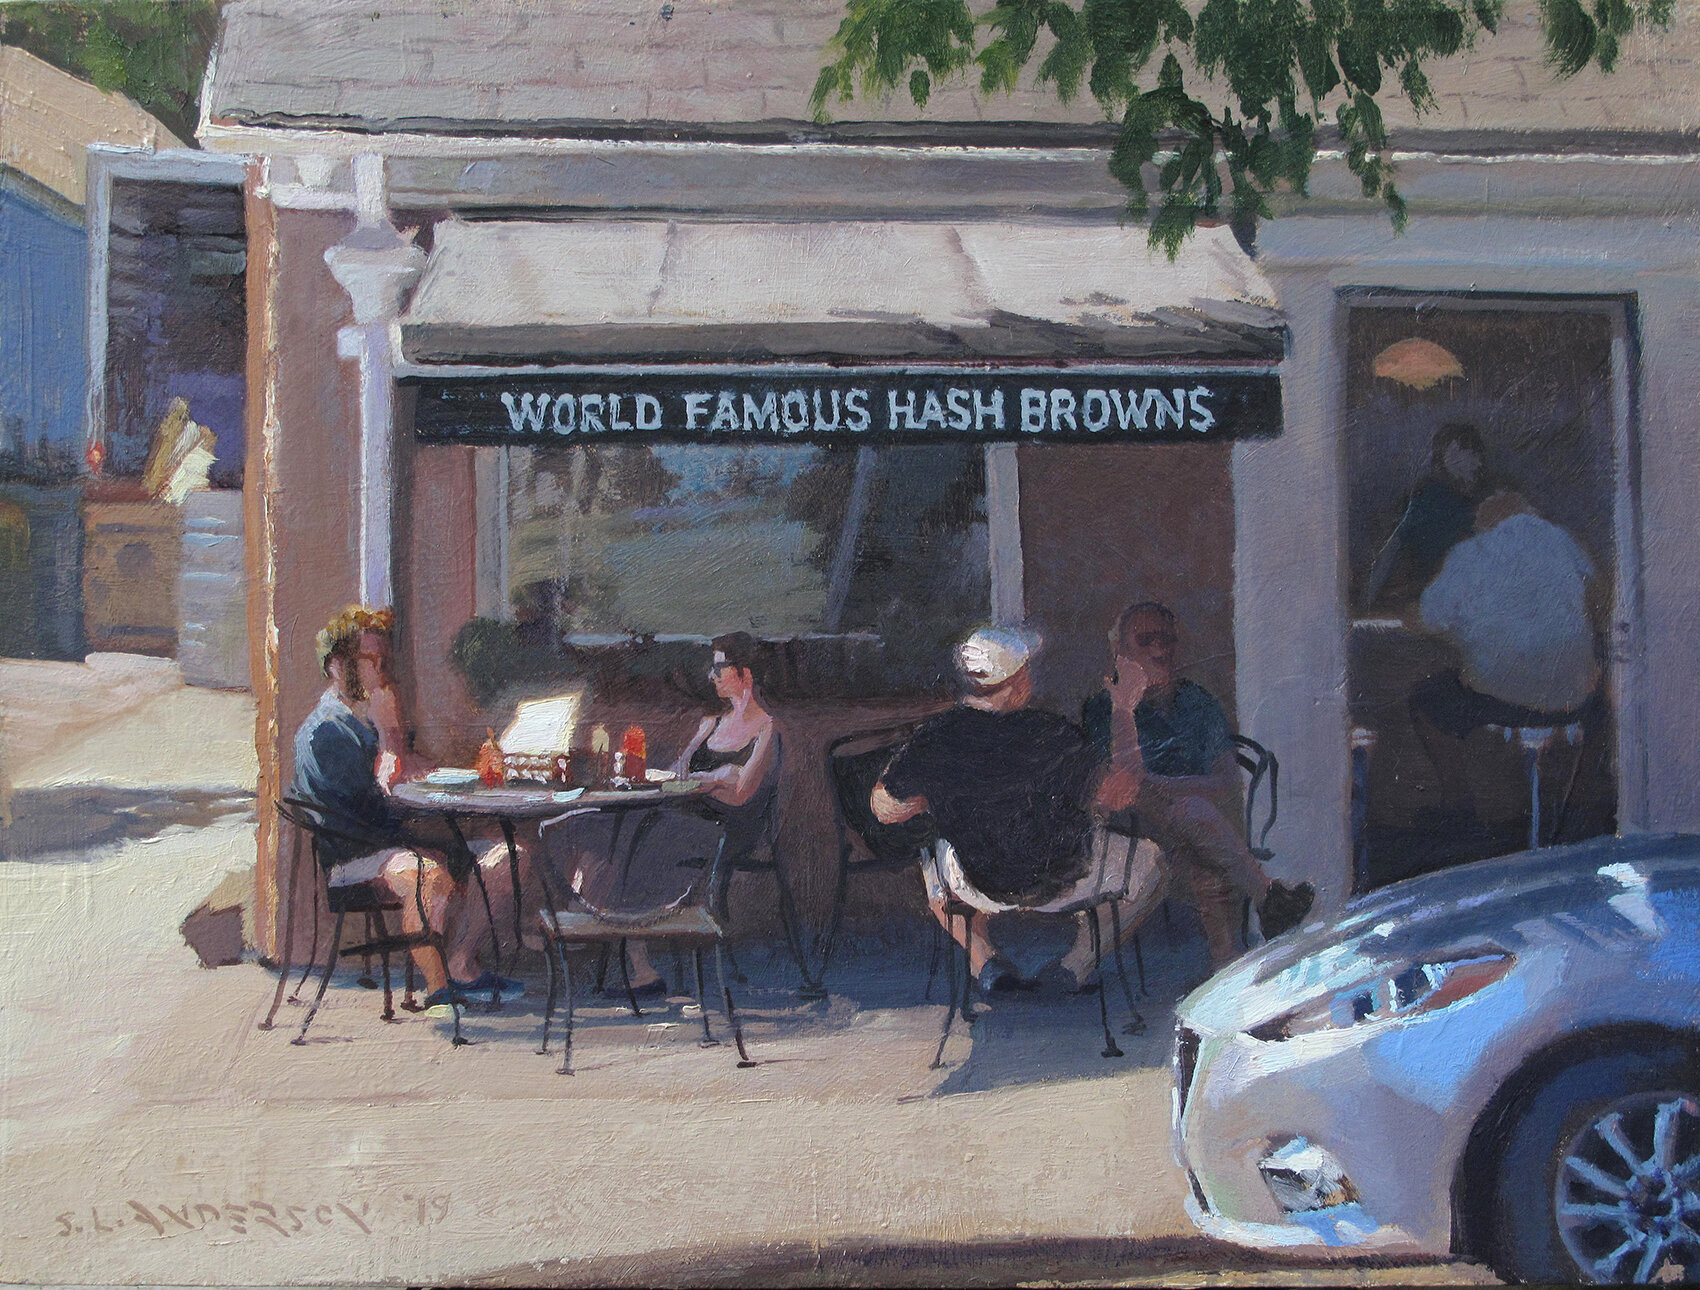 Local Breakfast Spot    12 x 16 oil on panel  Guess what's good to eat there?